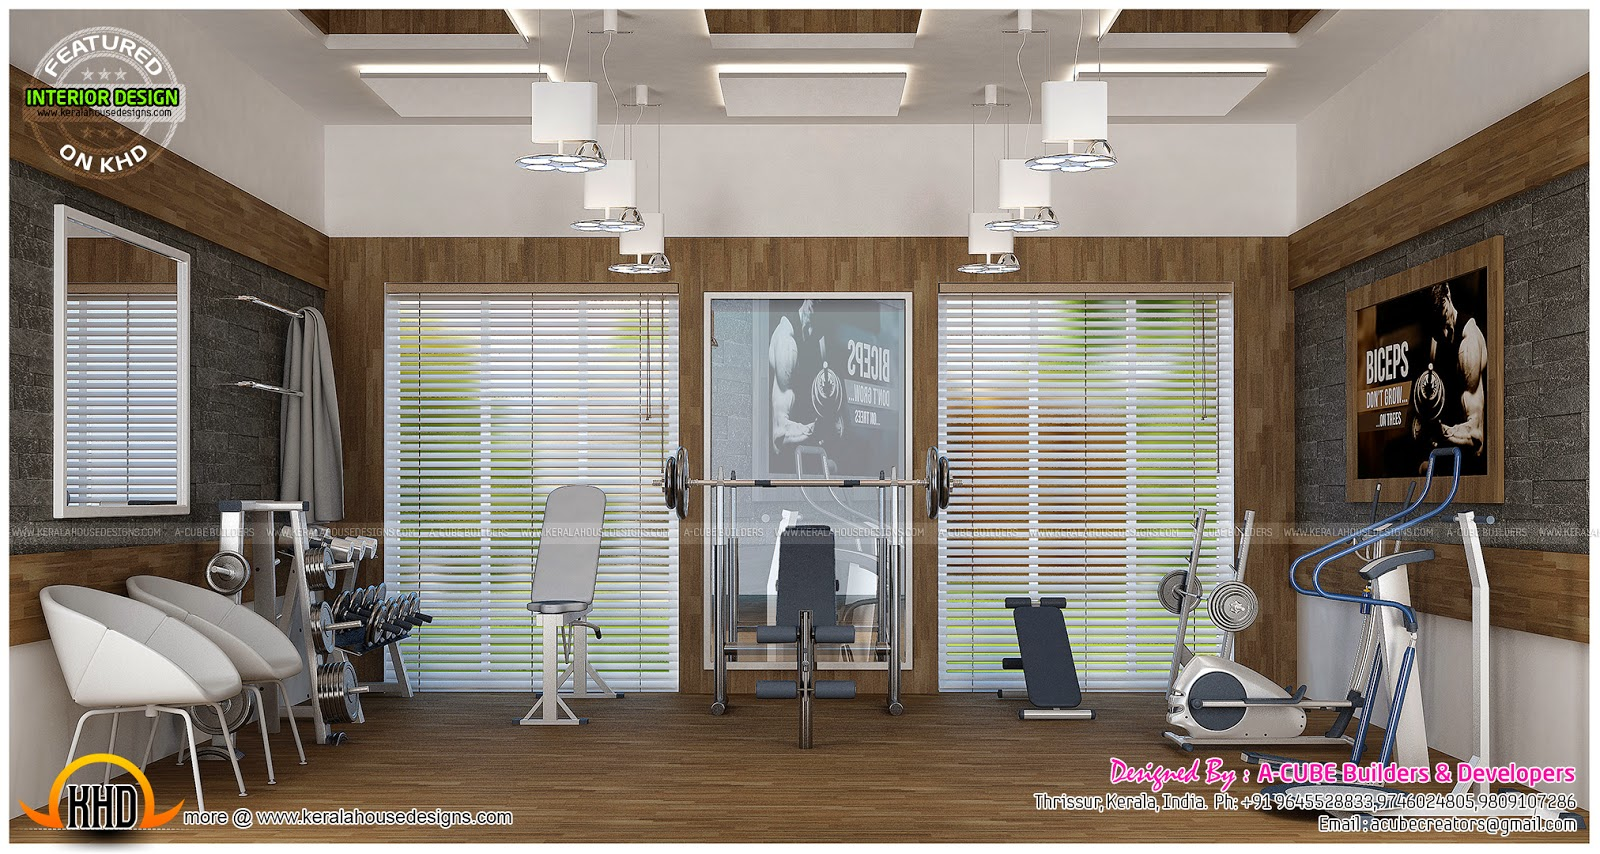 Pooja Living Home Gym And Office Interiors Kerala Home Design And Floor Plans